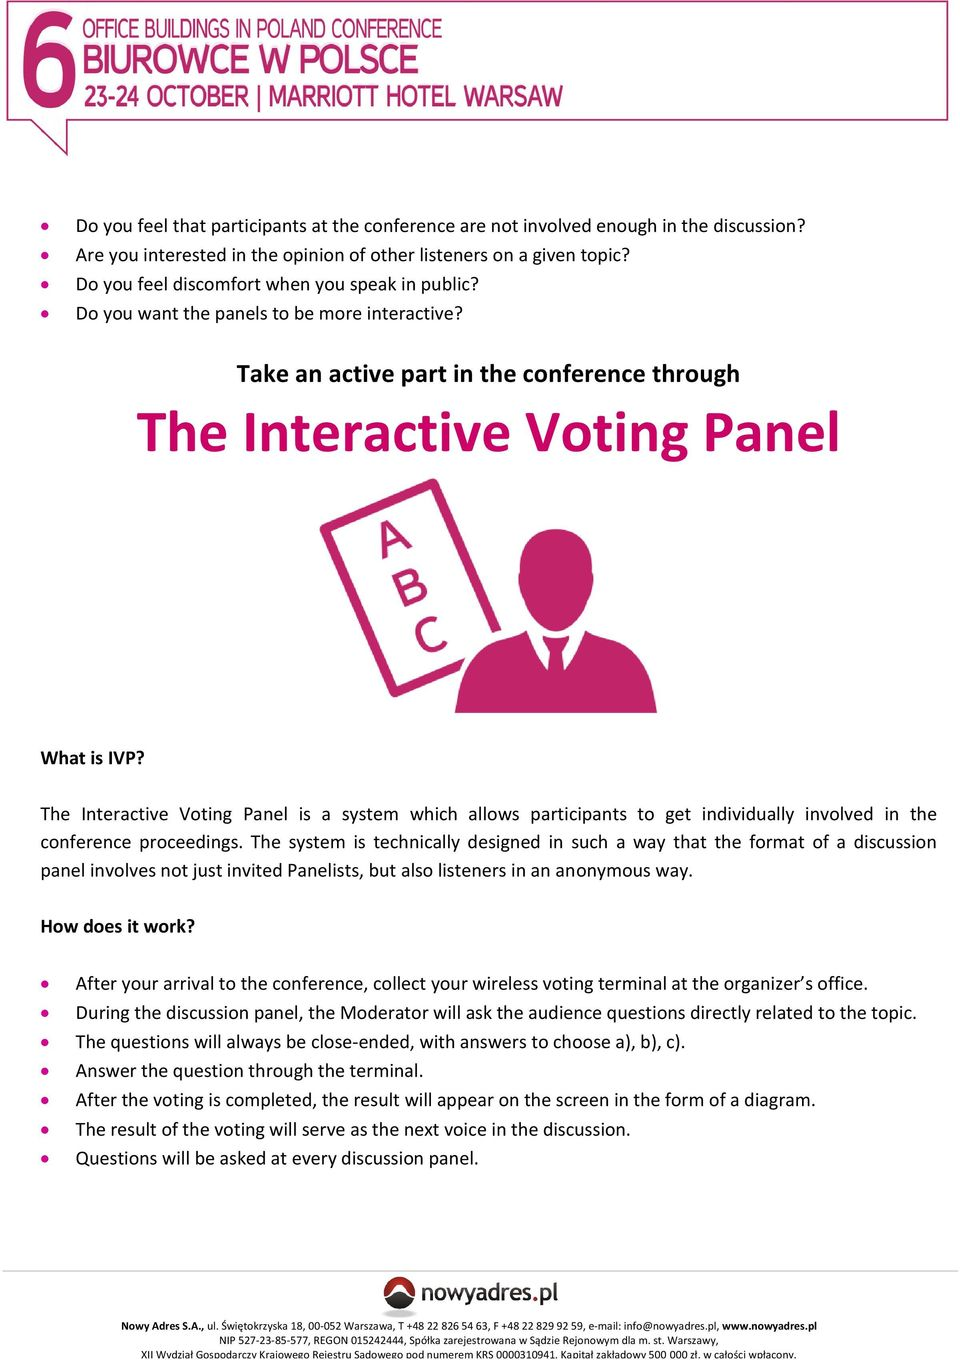 The Interactive Voting Panel is a system which allows participants to get individually involved in the conference proceedings.